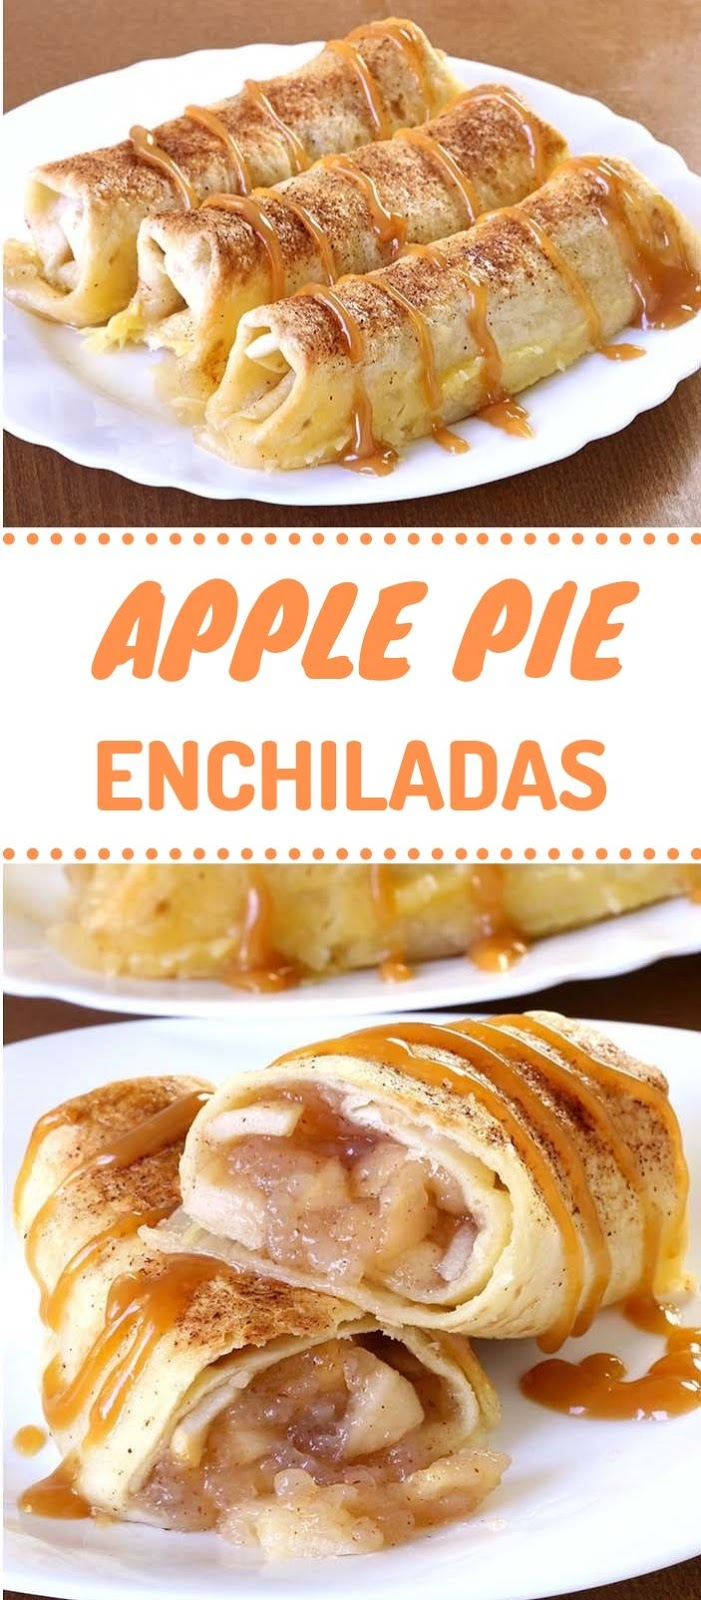 Apple Pie Enchiladas | Dessert Recipes Easy, Dessert Recipes Healthy, Dessert Recipes Peach, Dessert Recipes Simple, Dessert Recipes Best, Dessert Recipes Fall, Dessert Recipes Chocolate, Dessert Recipes For Summer, Dessert Recipes Videos, Dessert Recipes No Bake, Dessert Recipes Fancy, Dessert Recipes Cake, Dessert Recipes Christmas, Dessert Recipes Apple, Dessert Recipes Quick, Dessert Recipes Cheesecake, Dessert Recipes Cookies, Dessert Recipes Keto. #Dessert #Apple #Applepie #Enchiladas